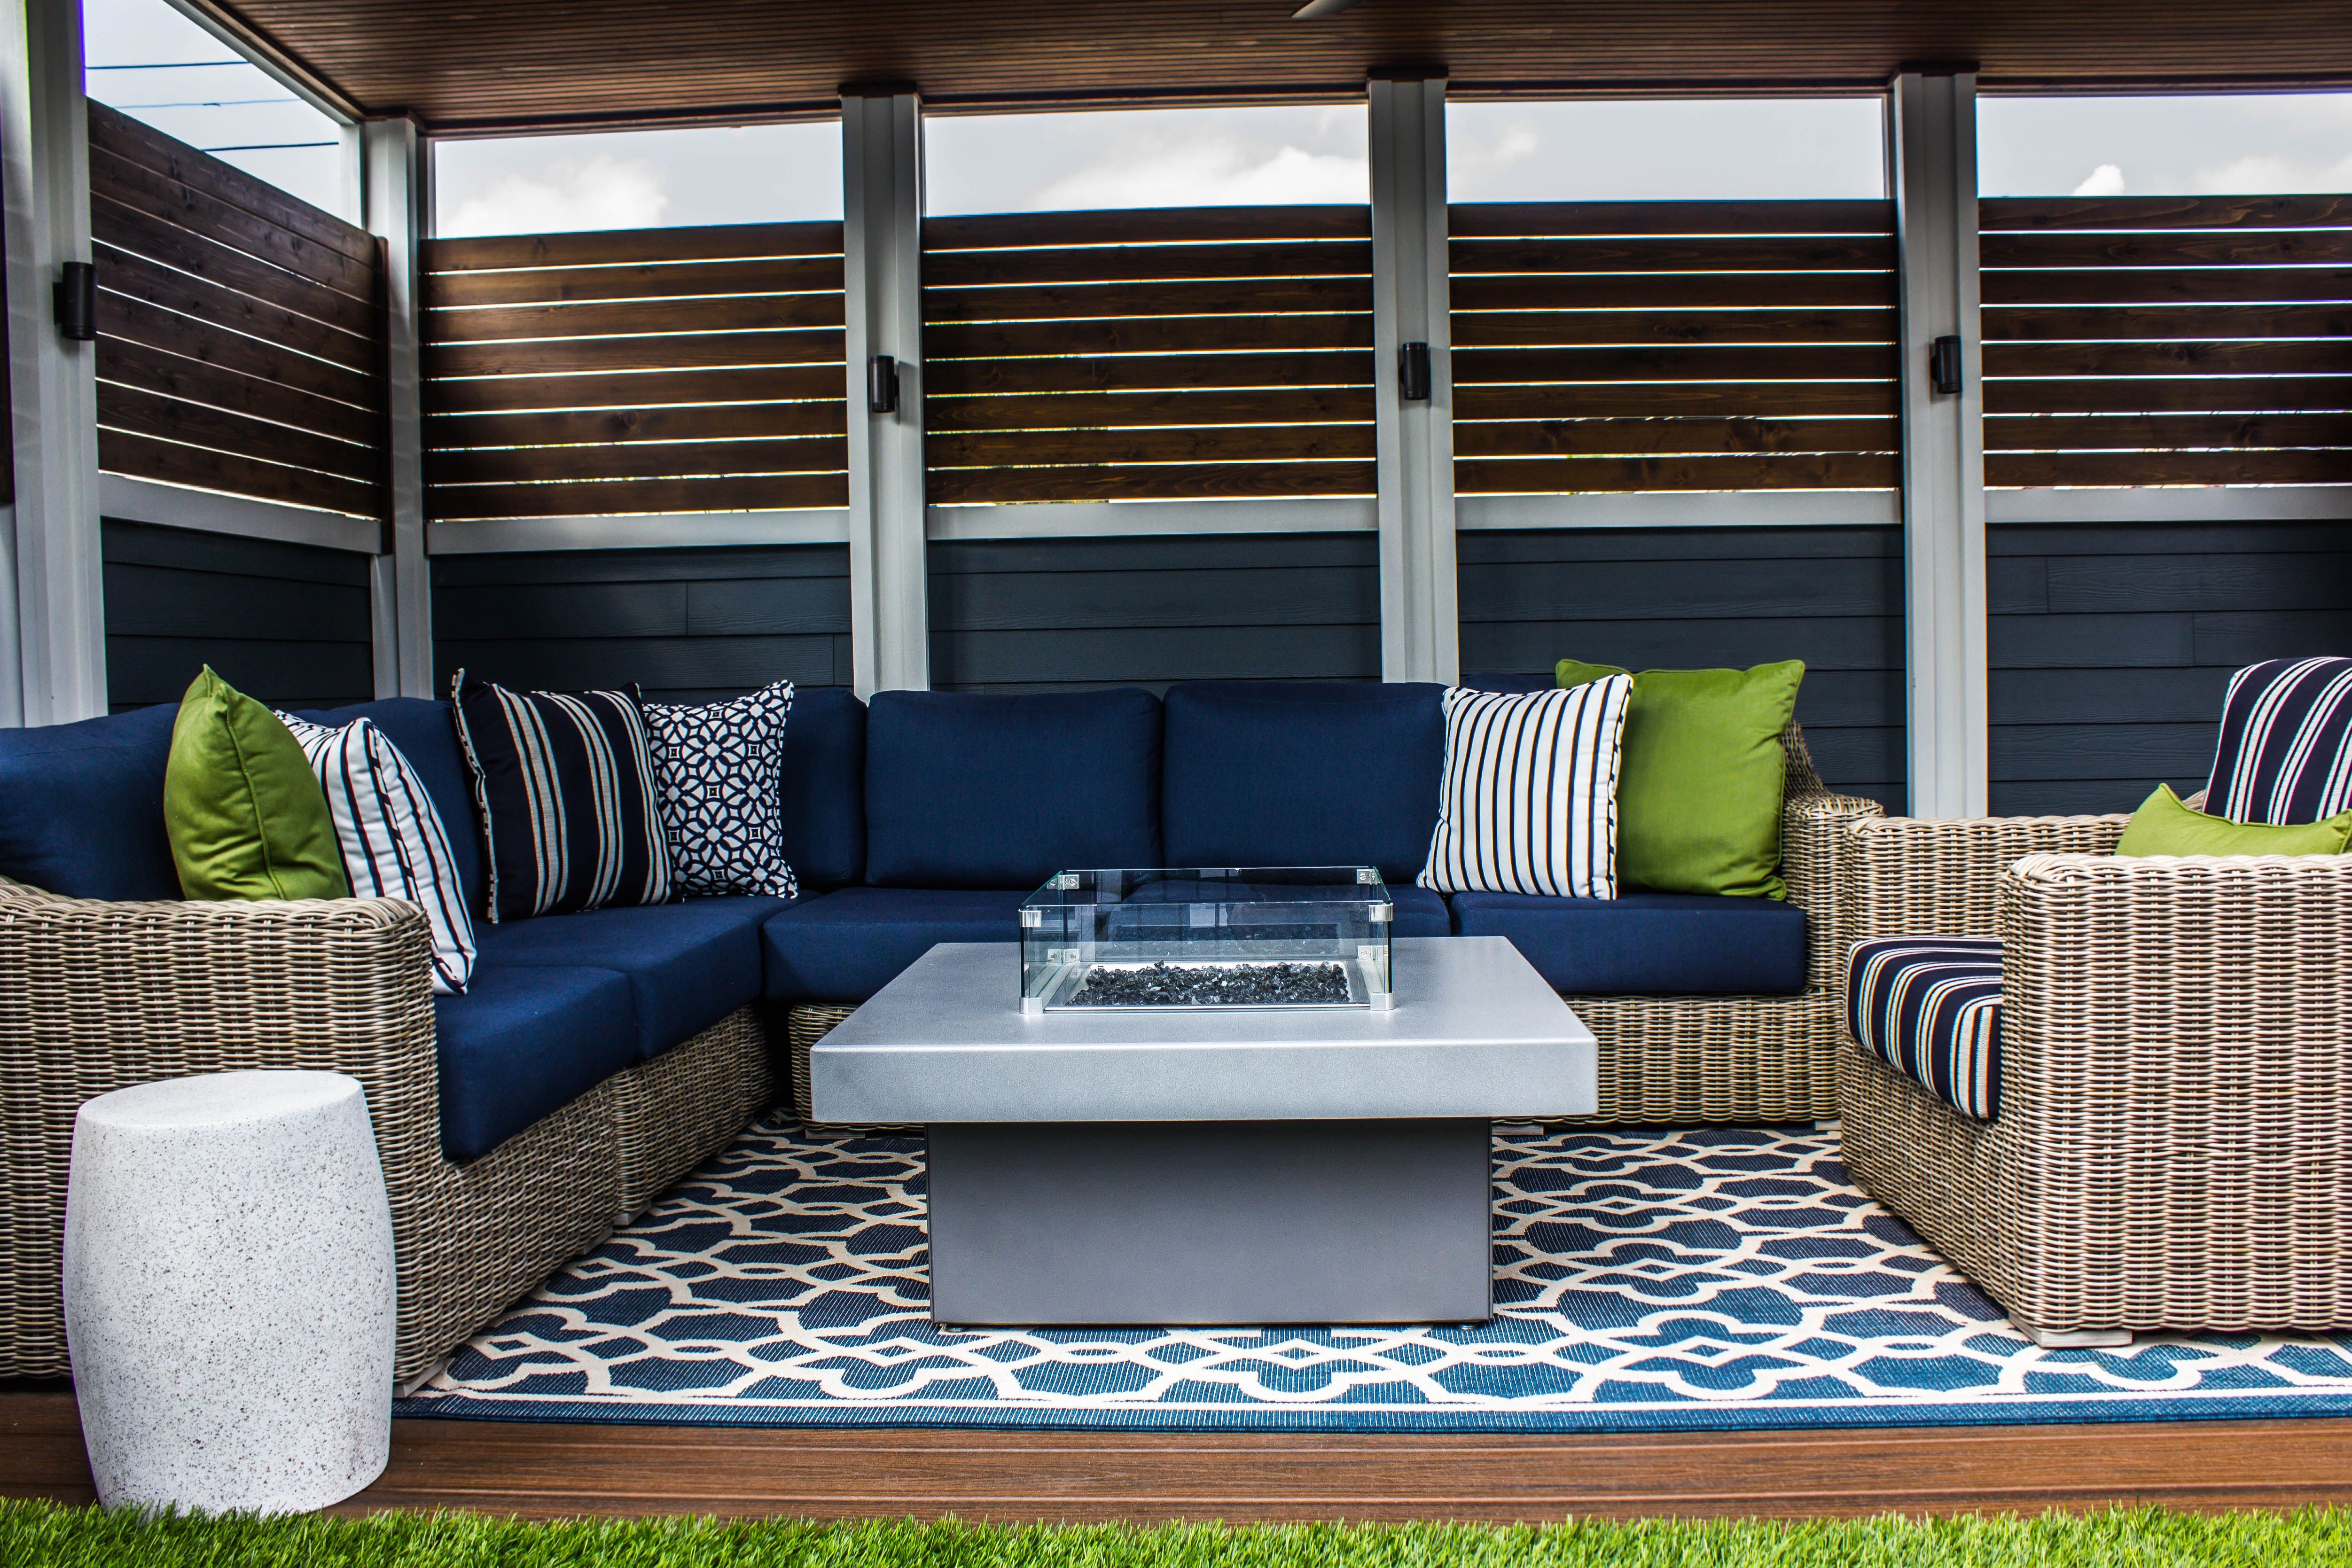 Best With The Wood Slats Surrounding This Seating Area Feels 400 x 300